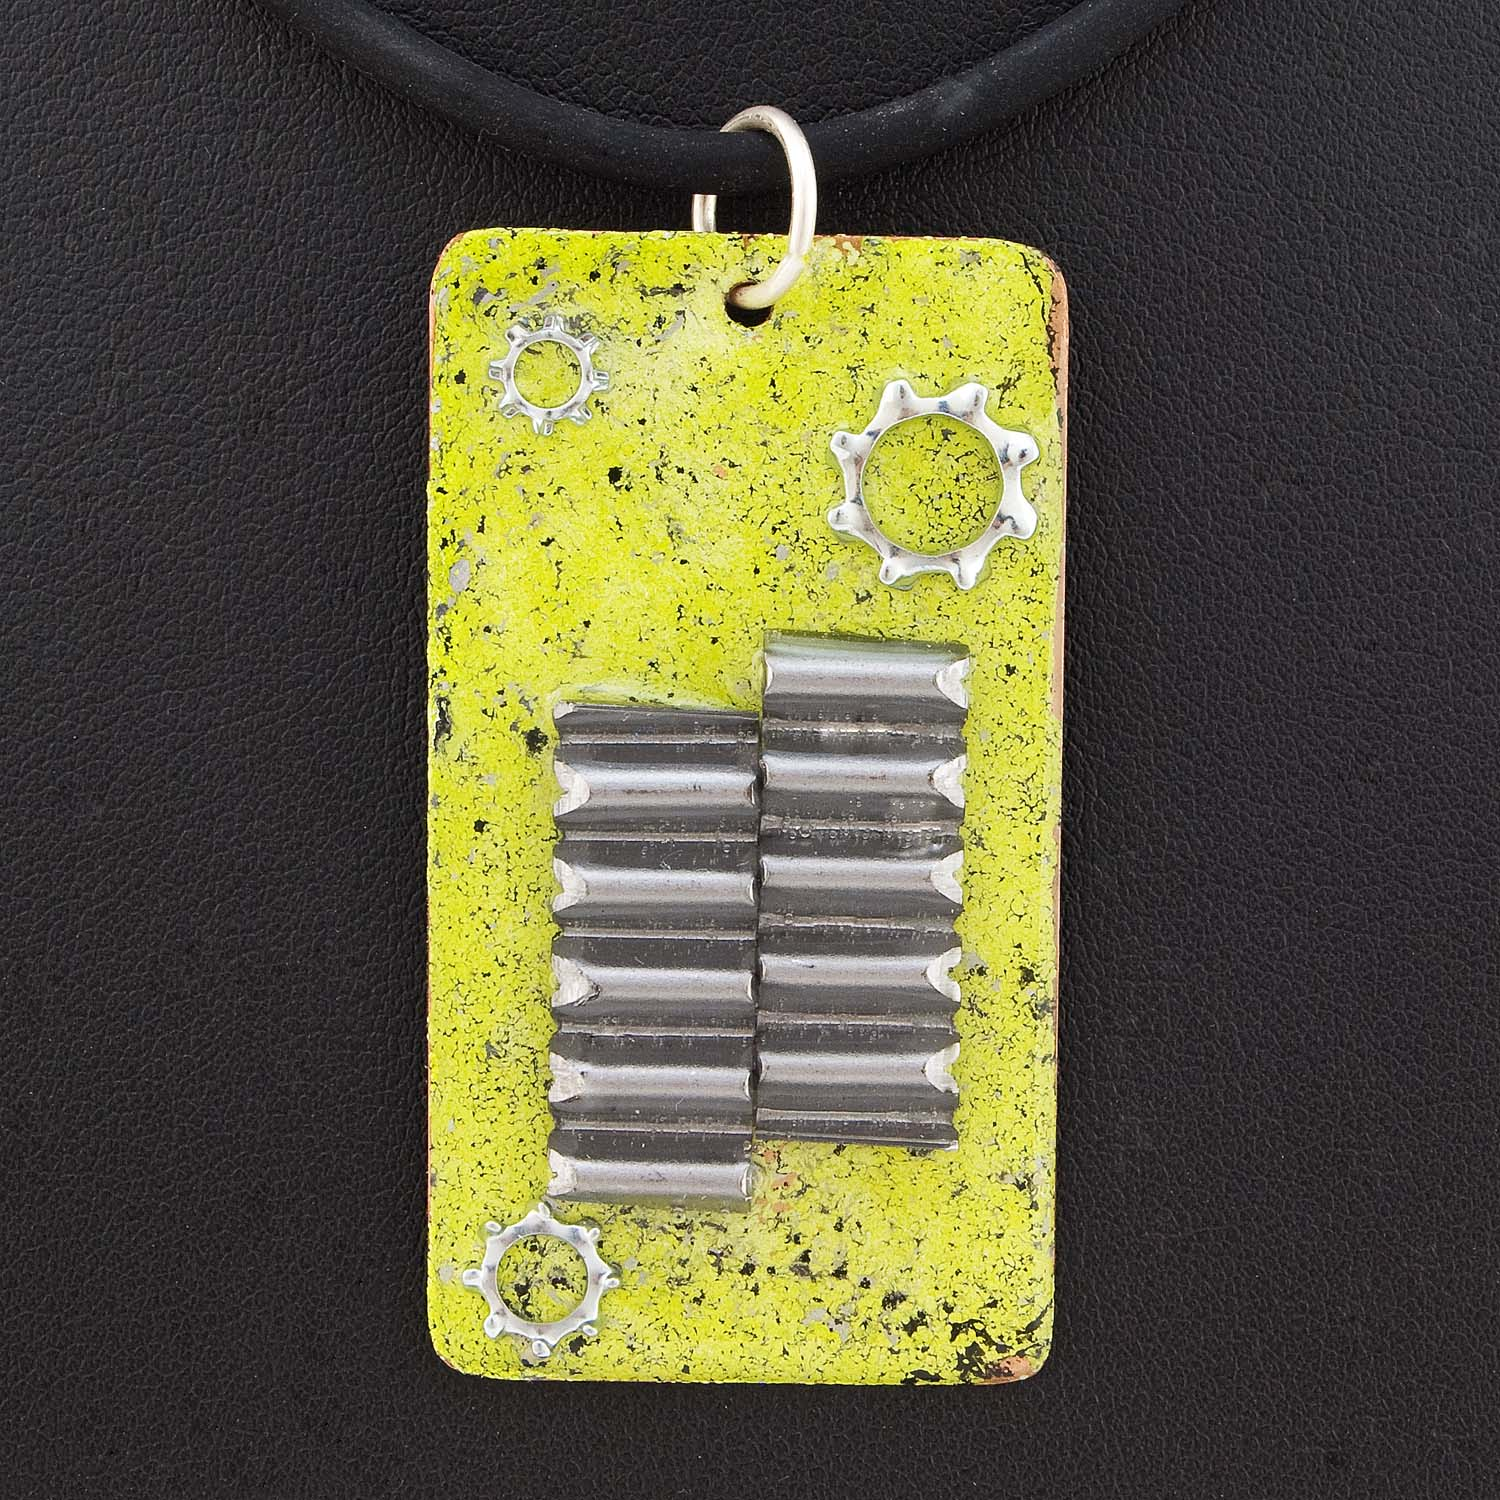 This pendant was made with enameled copper, corrugated fasteners and star washers from the hardware store. Hannah took one look and said, 'Wow! That's quite cyber punk, Mum.' I knew that.